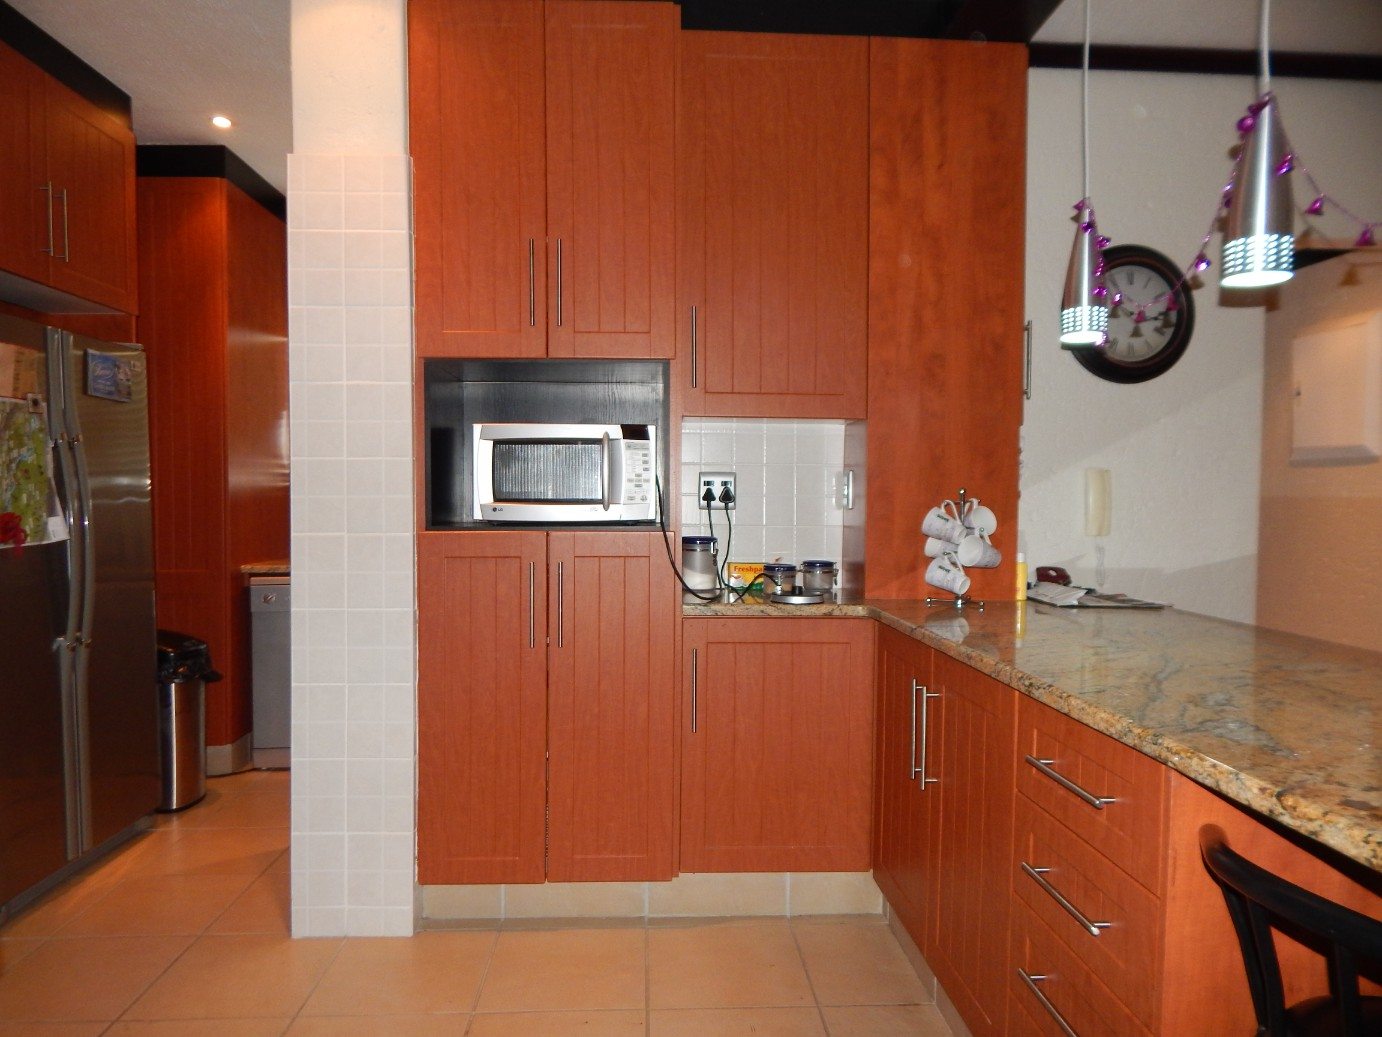 3 Bedroom Apartment for sale in Diaz Beach ENT0043723 : photo#18